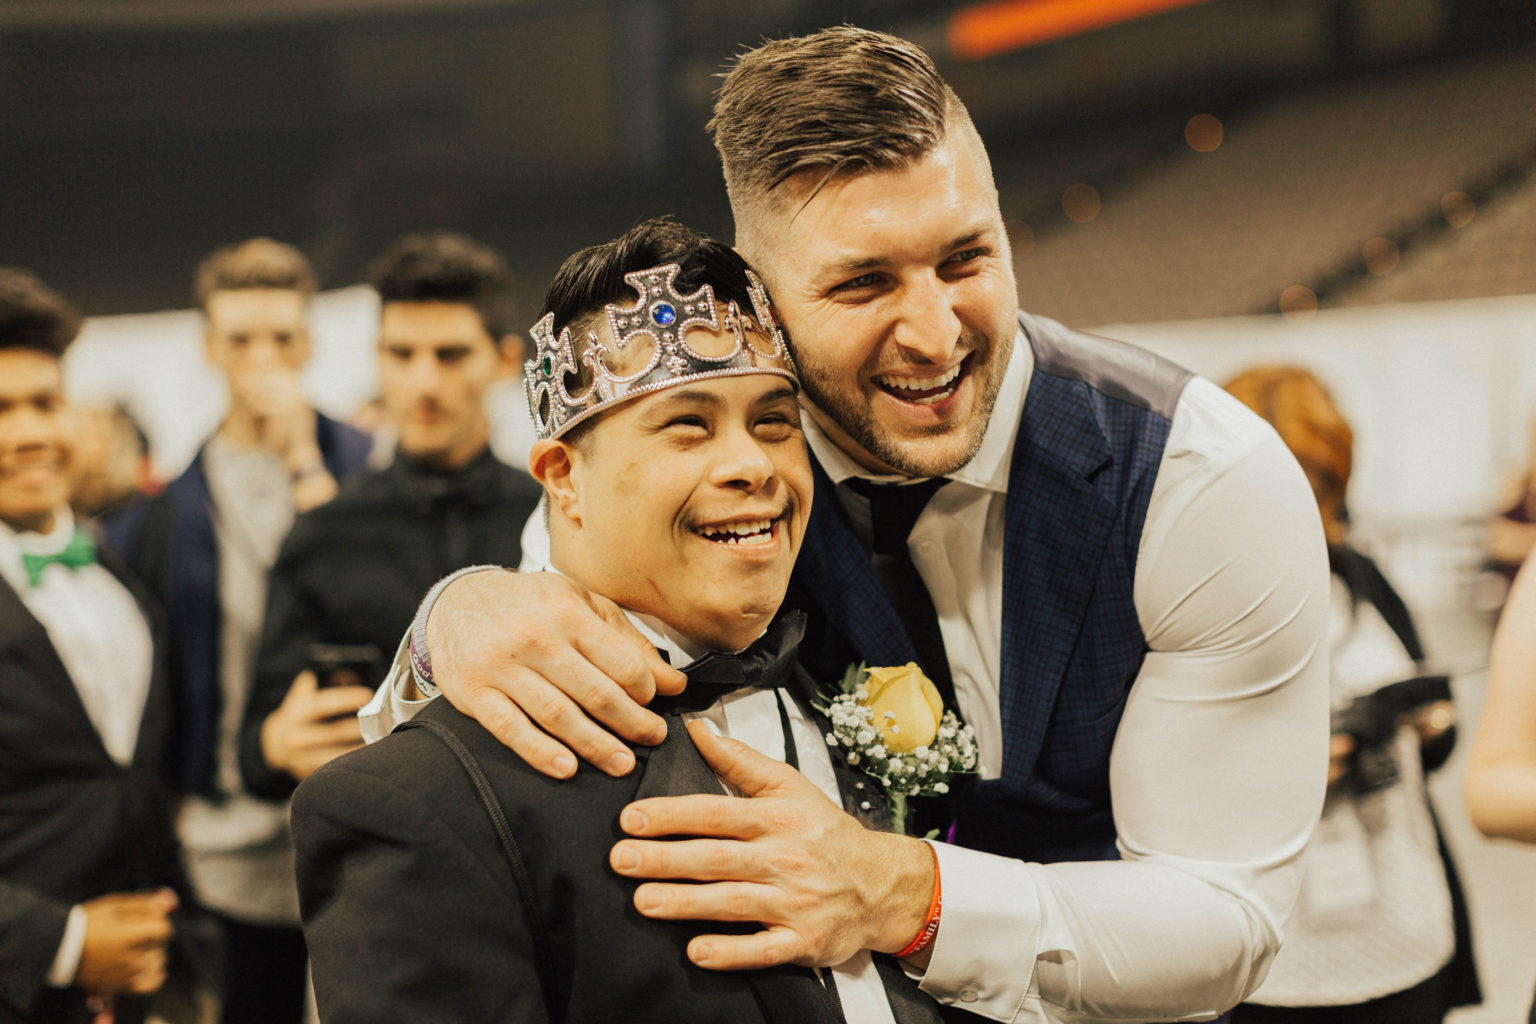 Get to Know What Tim Tebow Foundation Gives to Others